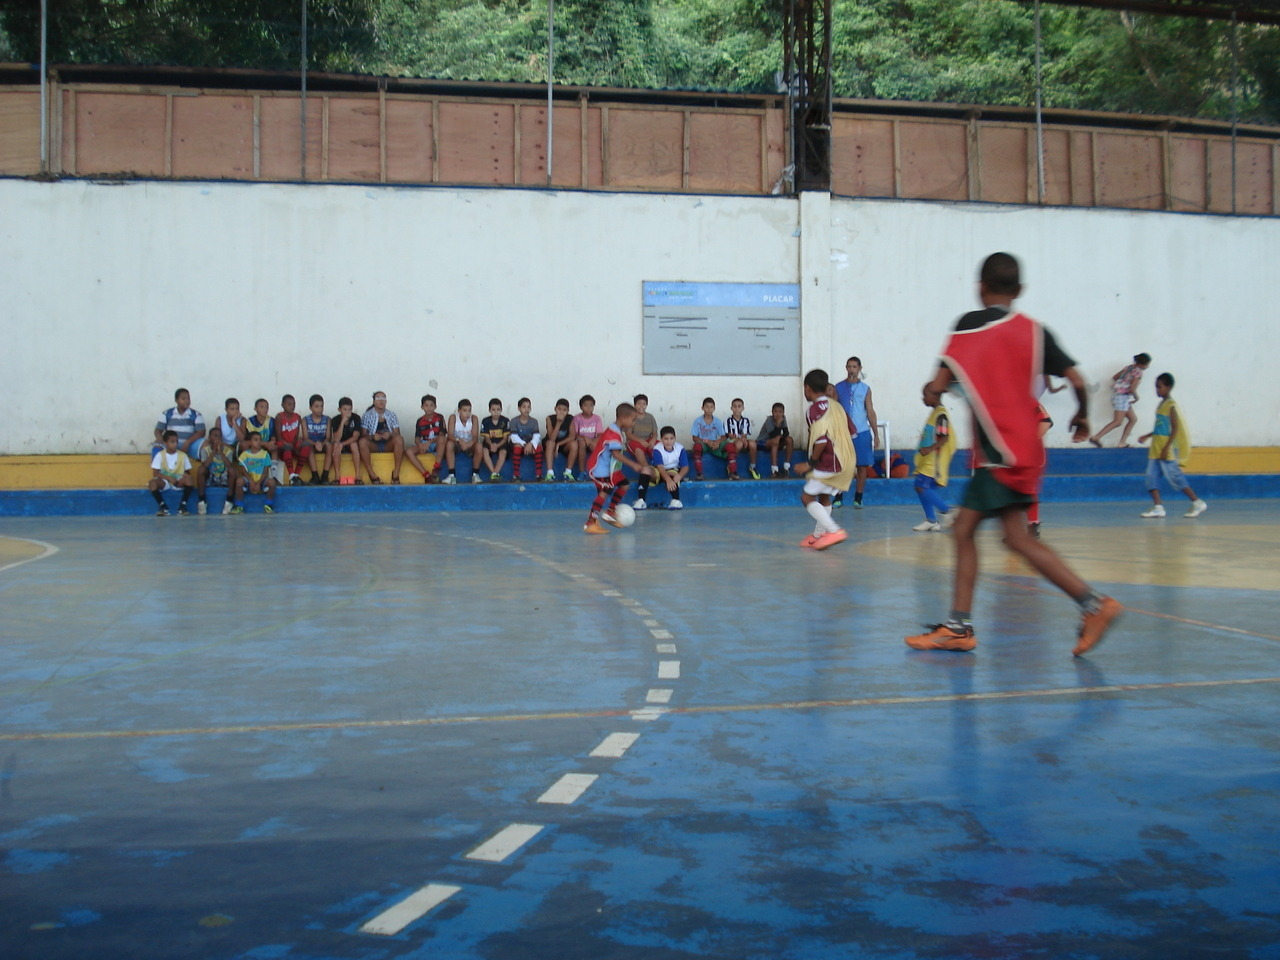 "#WhereIsFootball: The Cantagalo favela, Rio de Janeiro ""This past summer I spent a month in Rio de Janeiro participating in a study abroad program which focused on applied anthropology. Throughout those four weeks we visited a number of community centers located in various favelas throughout the city. This particular photograph was taken in the Espaço Criança Esperança community center in the Cantagalo favela. This center provides kids in Cantagalo with a place to explore books, music, and art, as well as sports such as swimming, boxing, and futebol. Towards the end of our visit we stopped and watched these kids display some pretty impressive skills. Unfortunately that's the only photo I have, wish I had taken more. - Mary Allen""  Thanks for a healthy dose of perspective, Mary. I'm calling this the other, other side of 2014. These kids may not have much, they may be the ones the government is refusing to take care of ahead of the World Cup, but no one will be taking that ball away from their feet. In a poverty-stricken favela, this futsal court will try to support the dreams and the joy of the next Ronaldinho. Get involved with #WhereIsFootball and follow our project on Instagram."